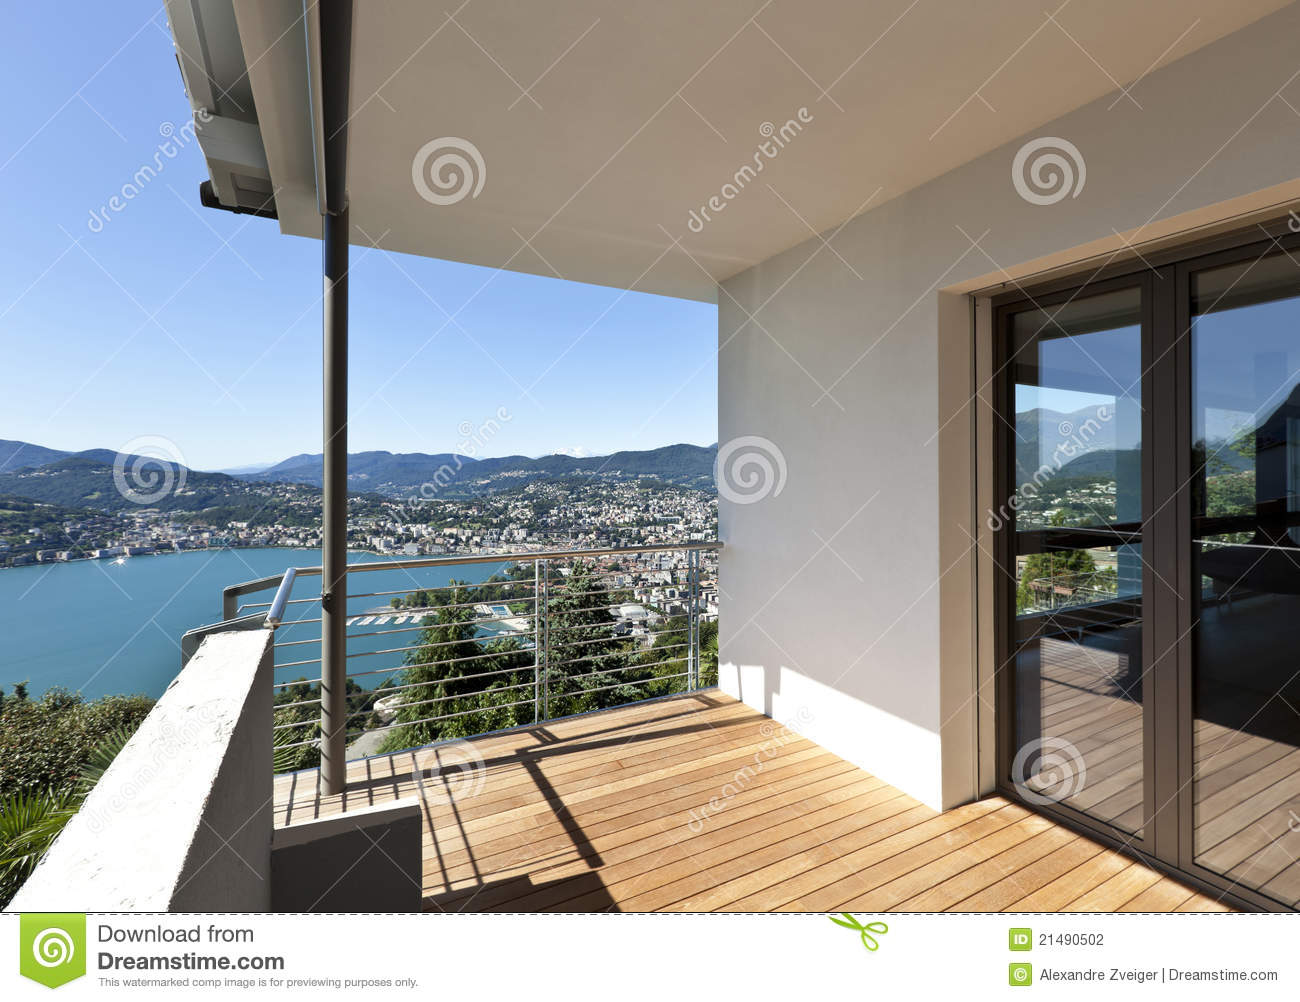 Balcony overlooking the lake stock photography image for Balcony overlooking city